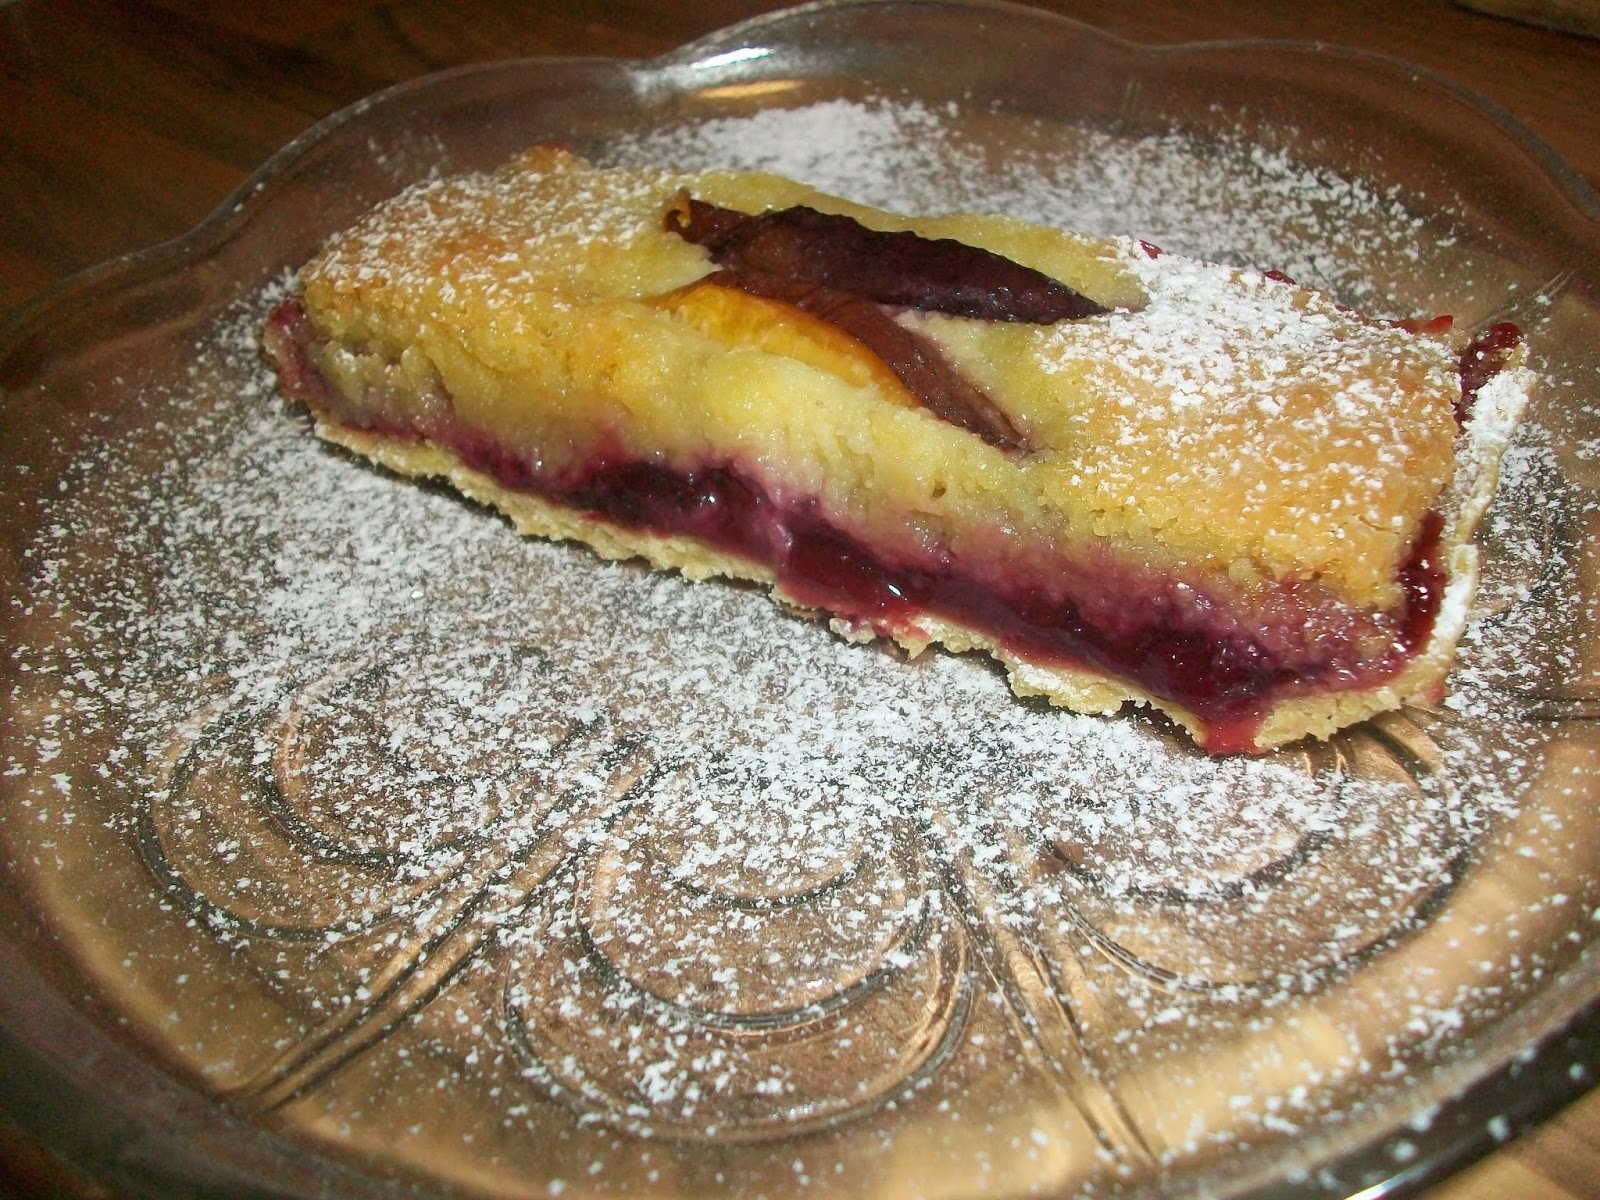 ... plum compote combining beautifully with sweet soft frangipane. Yum